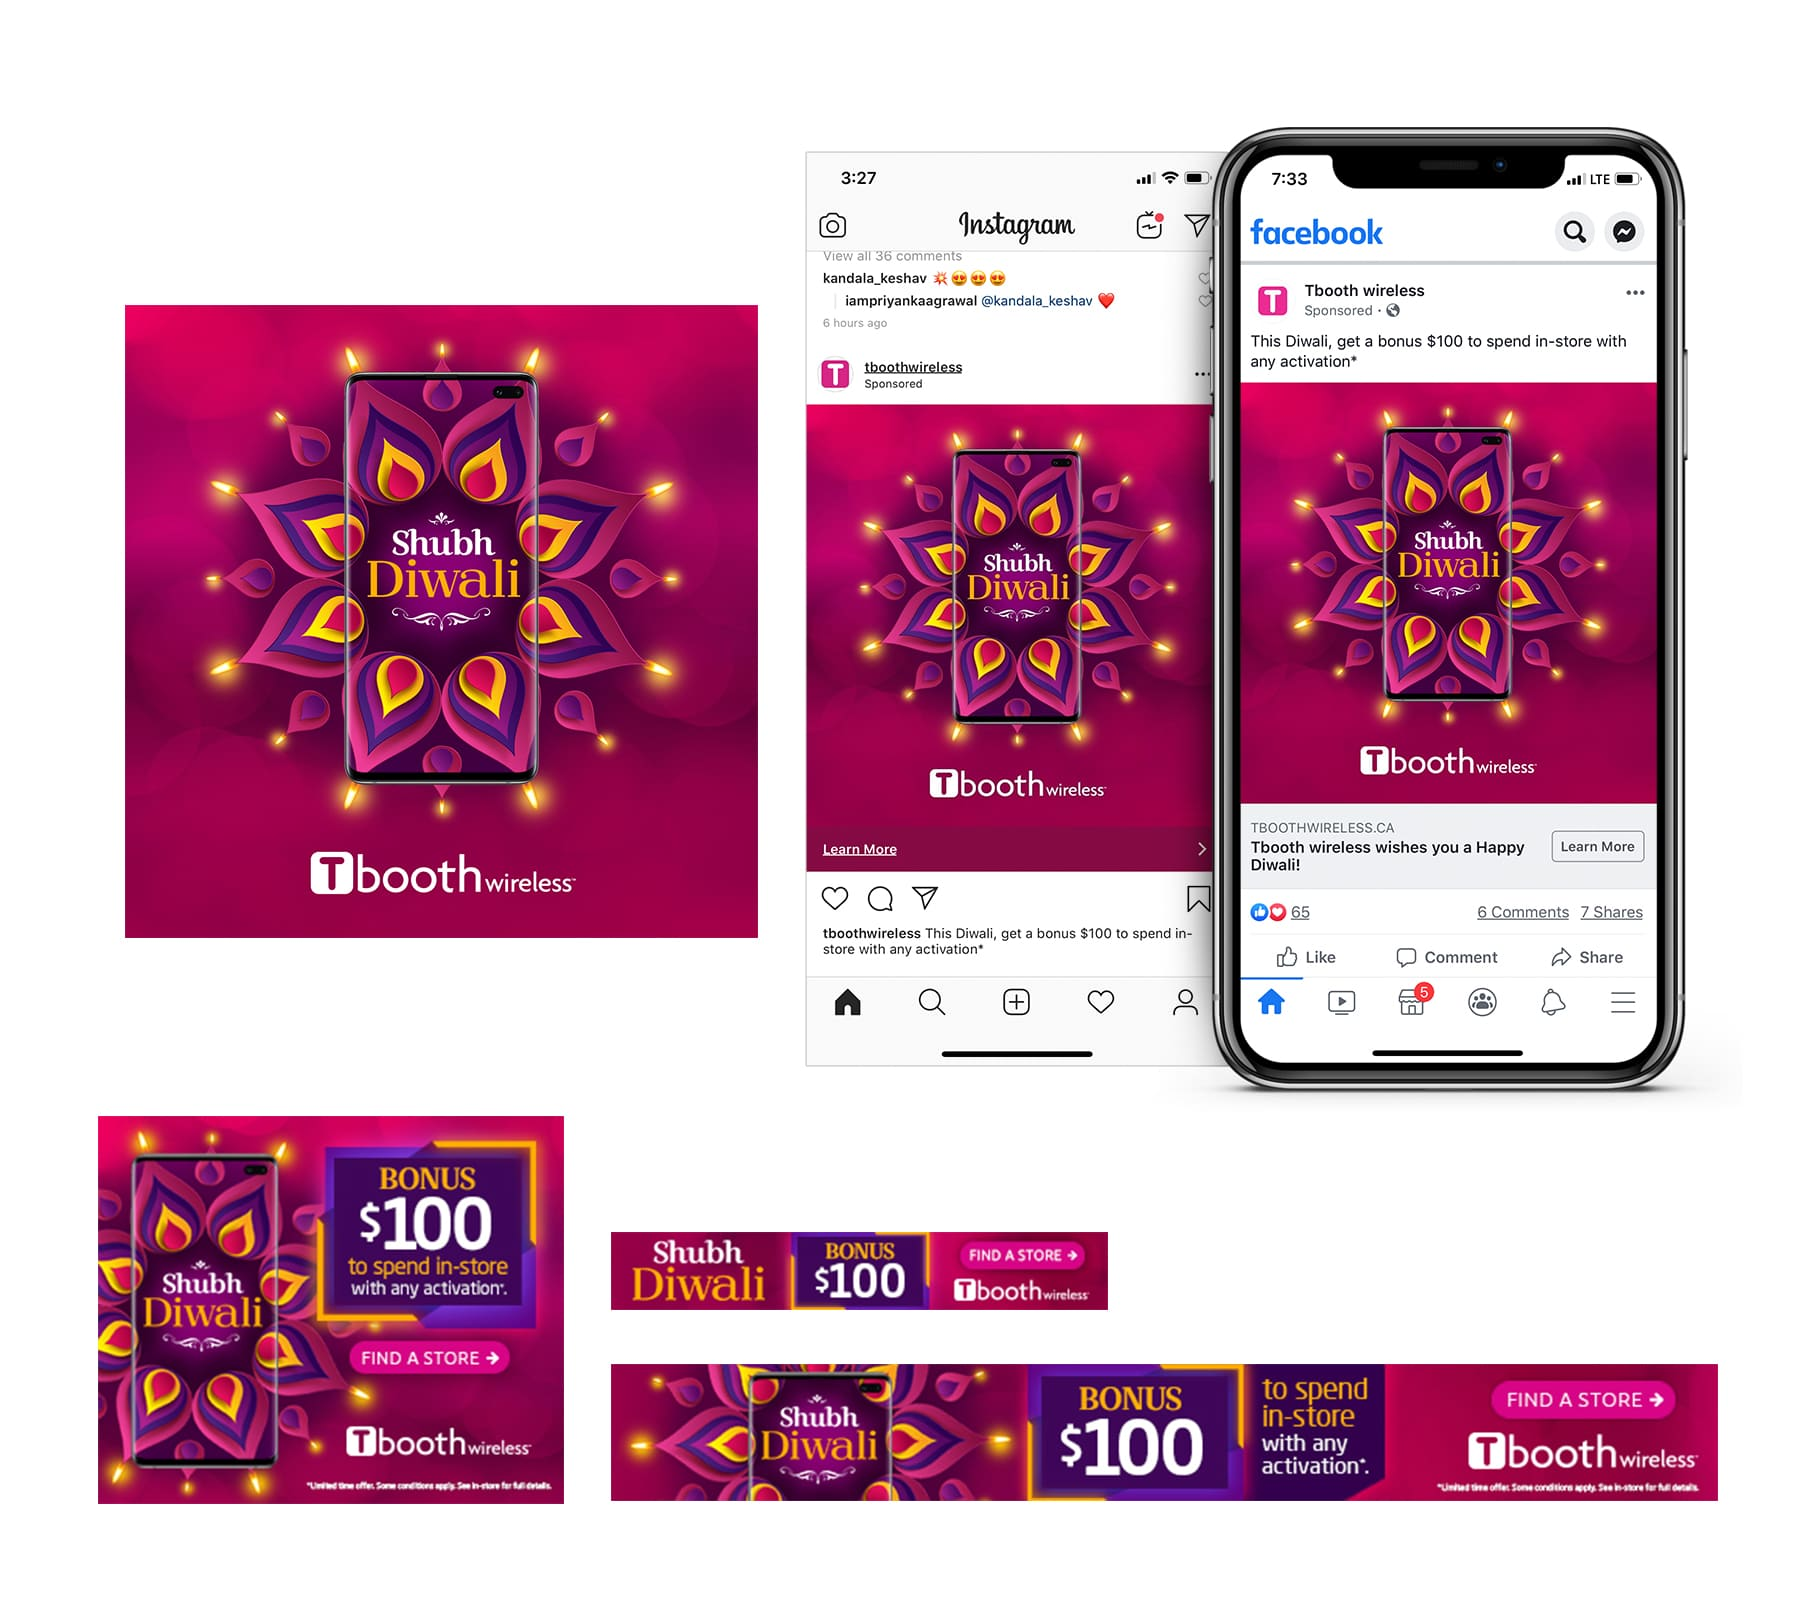 diwali-celebrations-targeting-south-asian-consumers